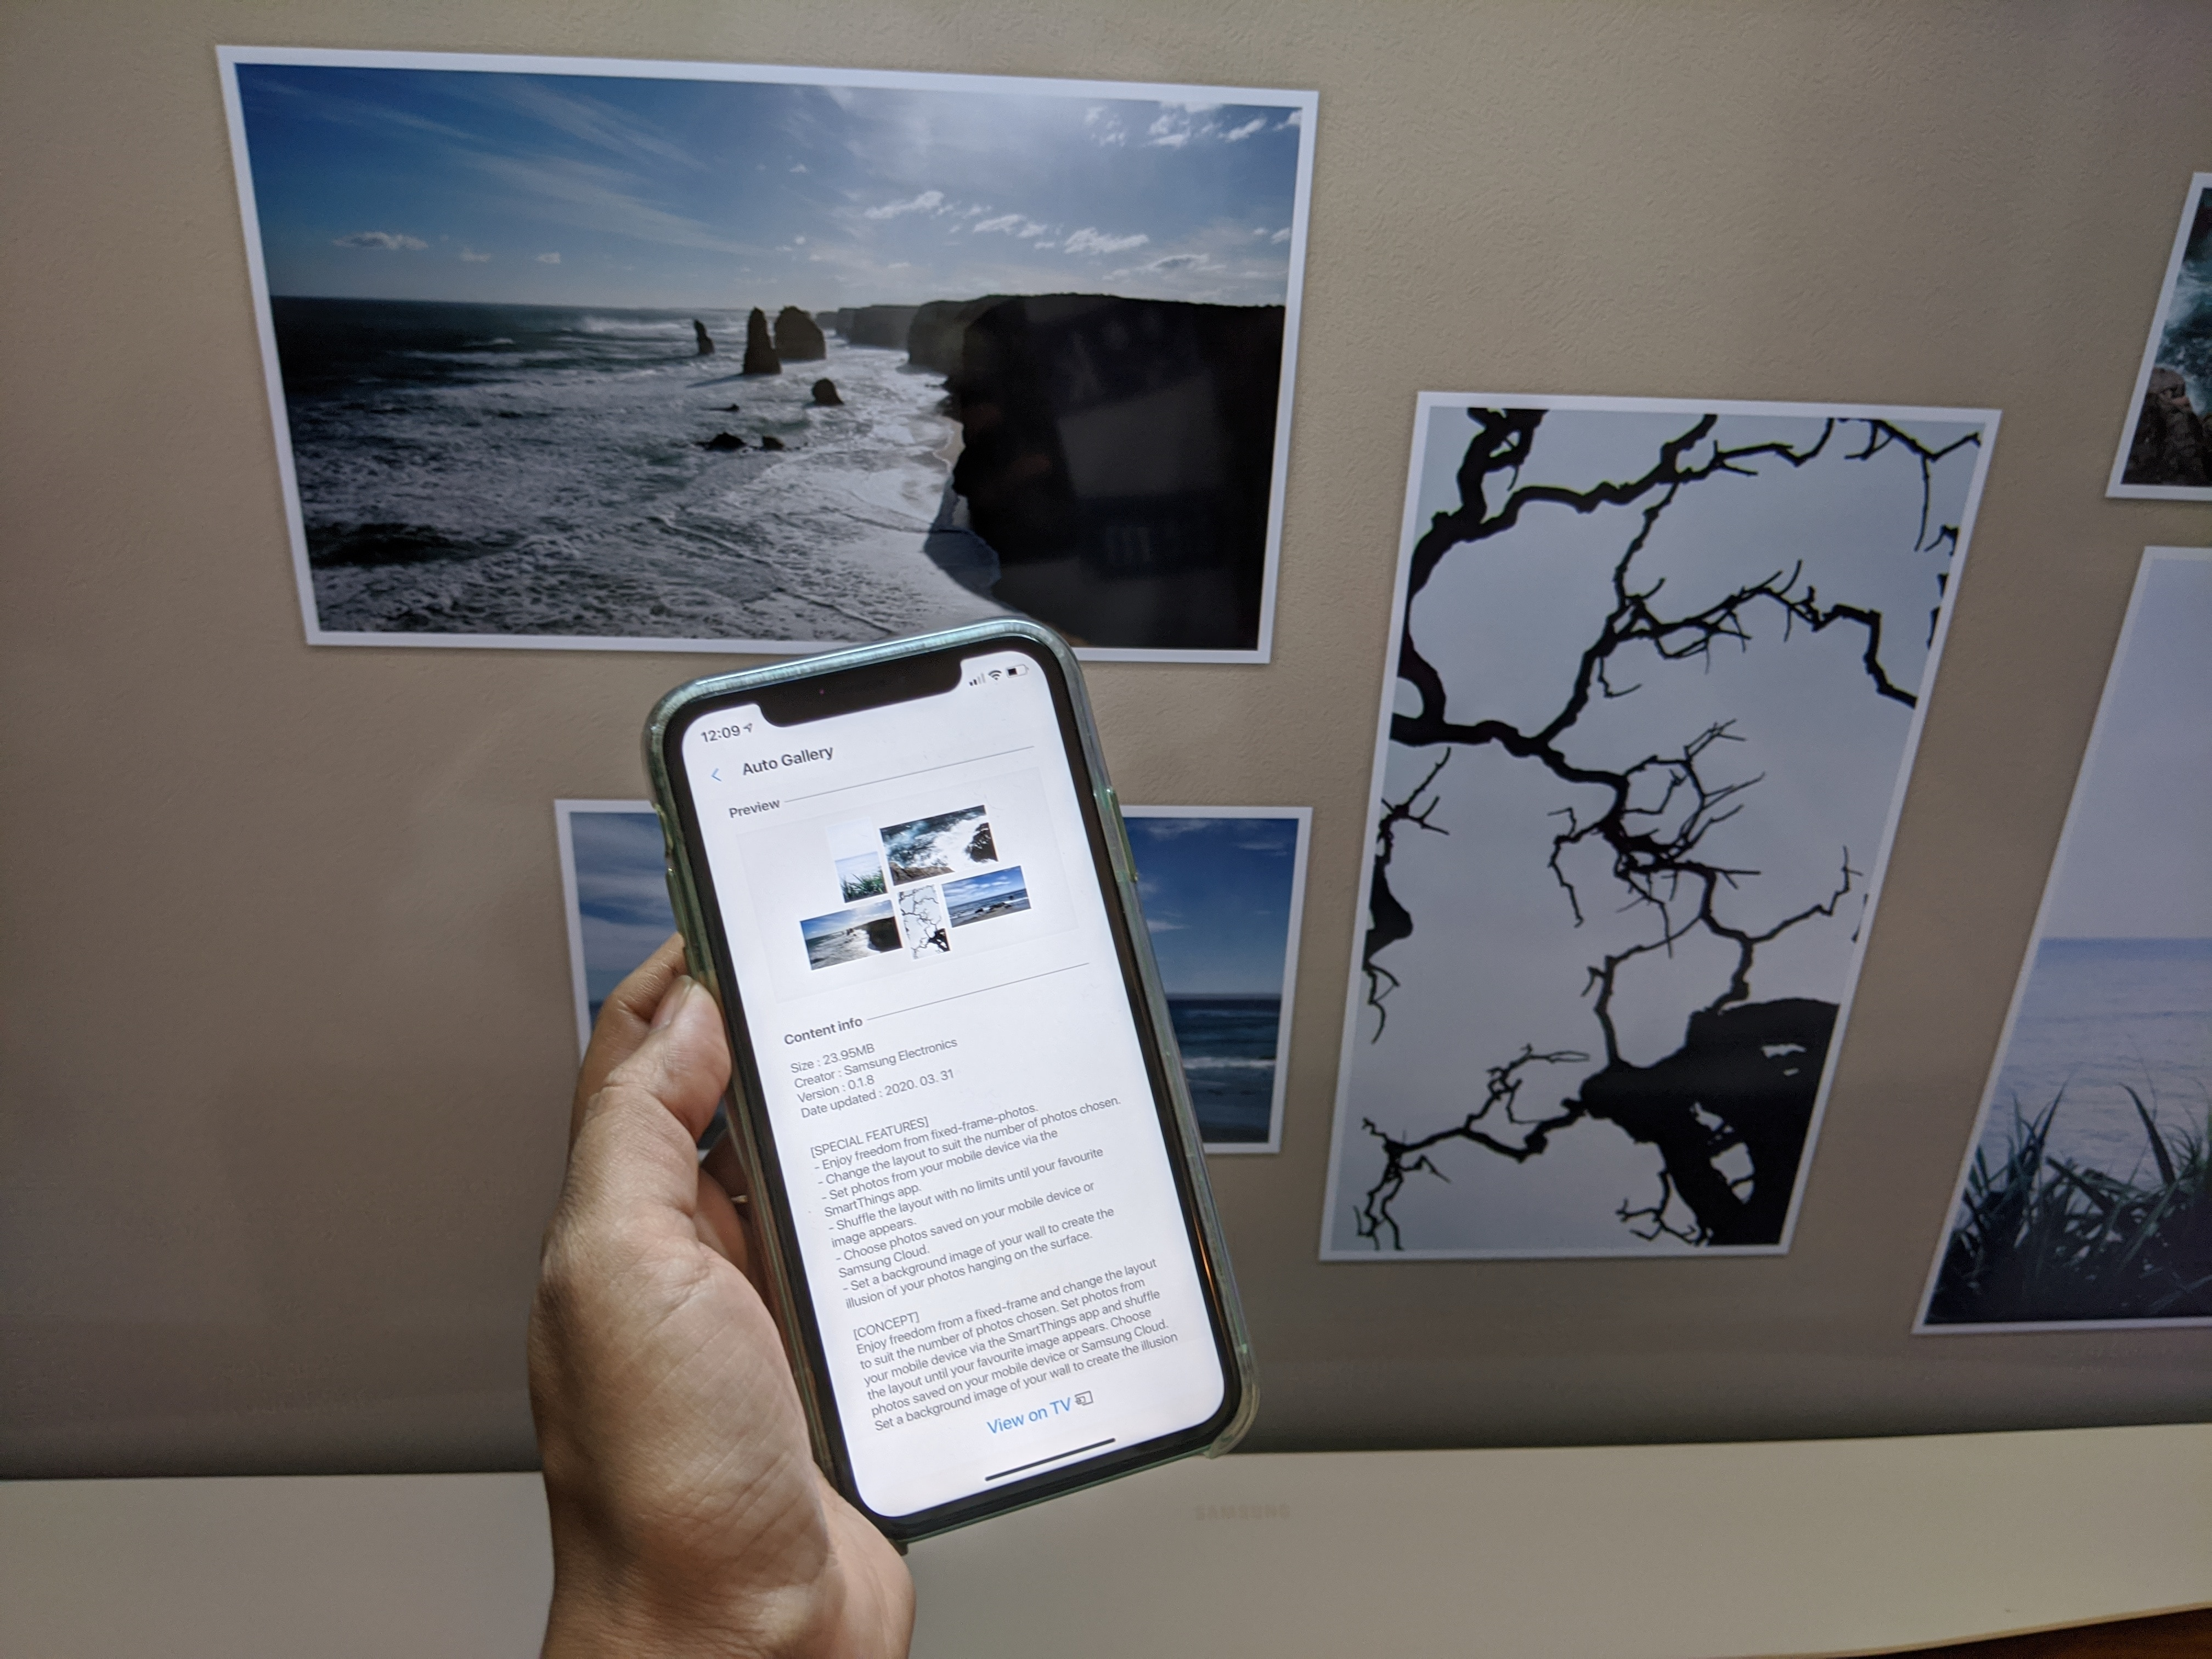 The Samsung Serif with its all-encompassing thick white frame looks perfect for those pictures and makes a stronger case for why it should be on the wall.